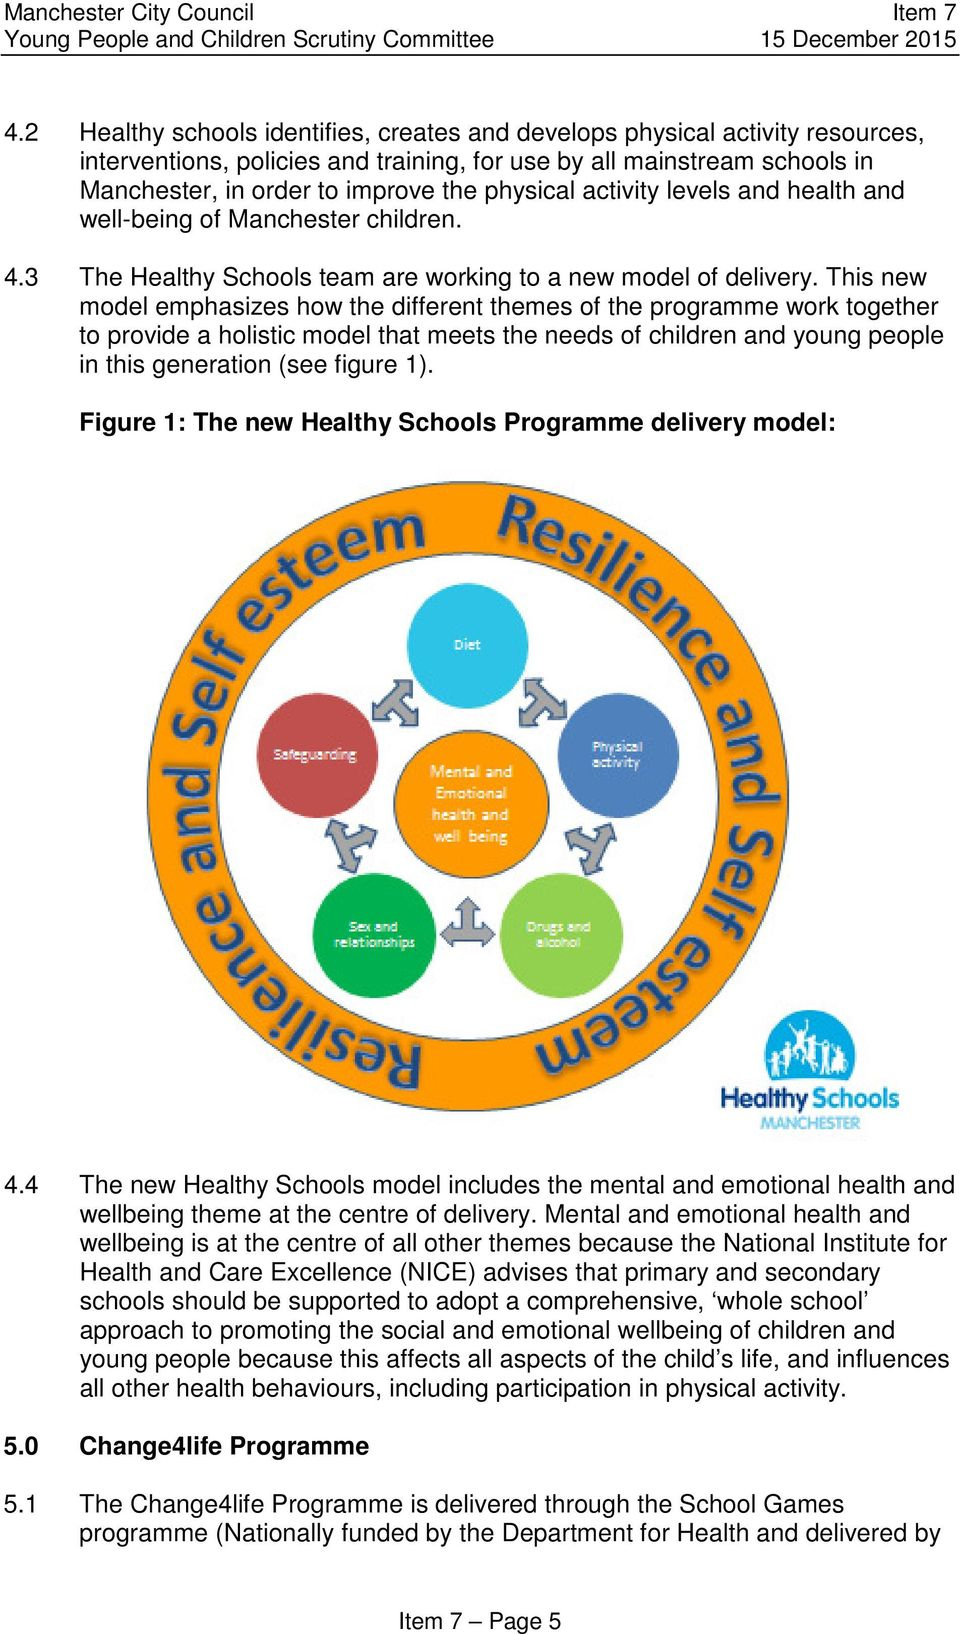 This new model emphasizes how the different themes of the programme work together to provide a holistic model that meets the needs of children and young people in this generation (see figure 1).